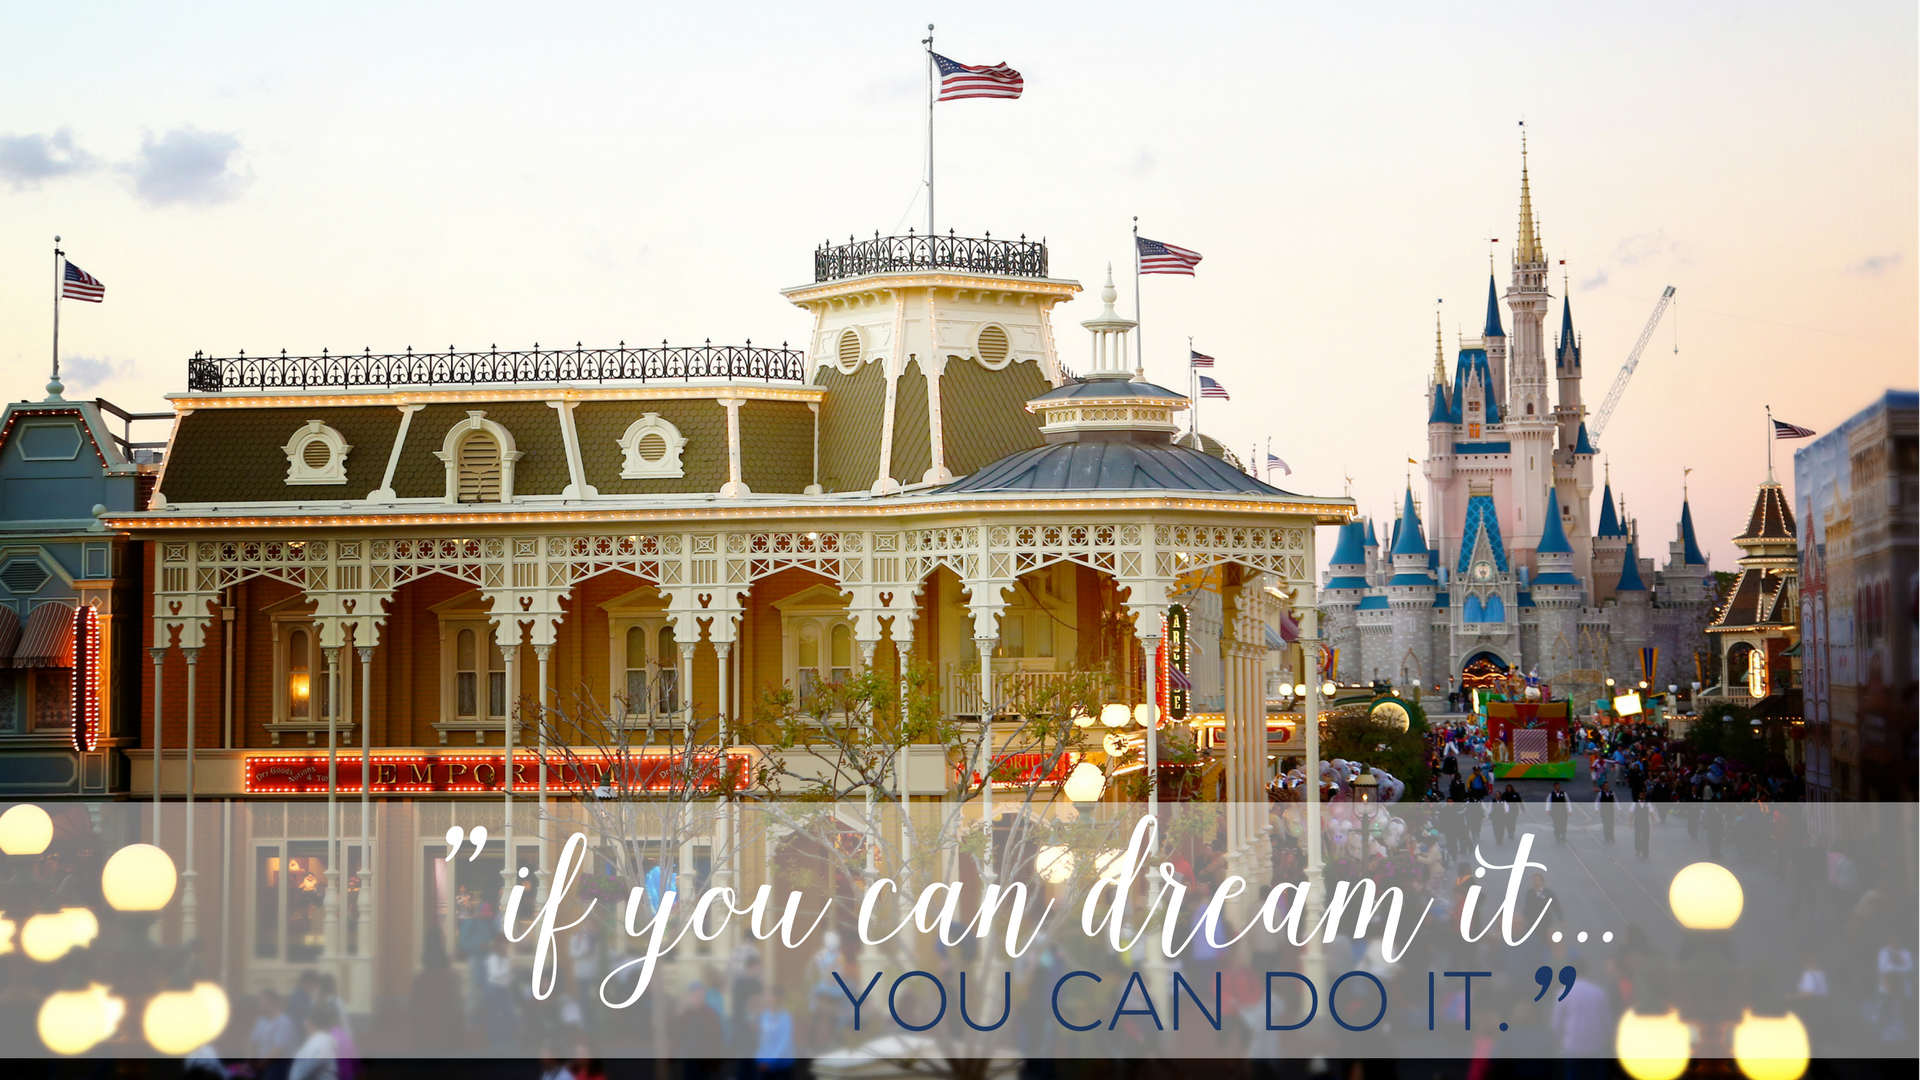 """if you can dream it...YOU CAN DO IT."""